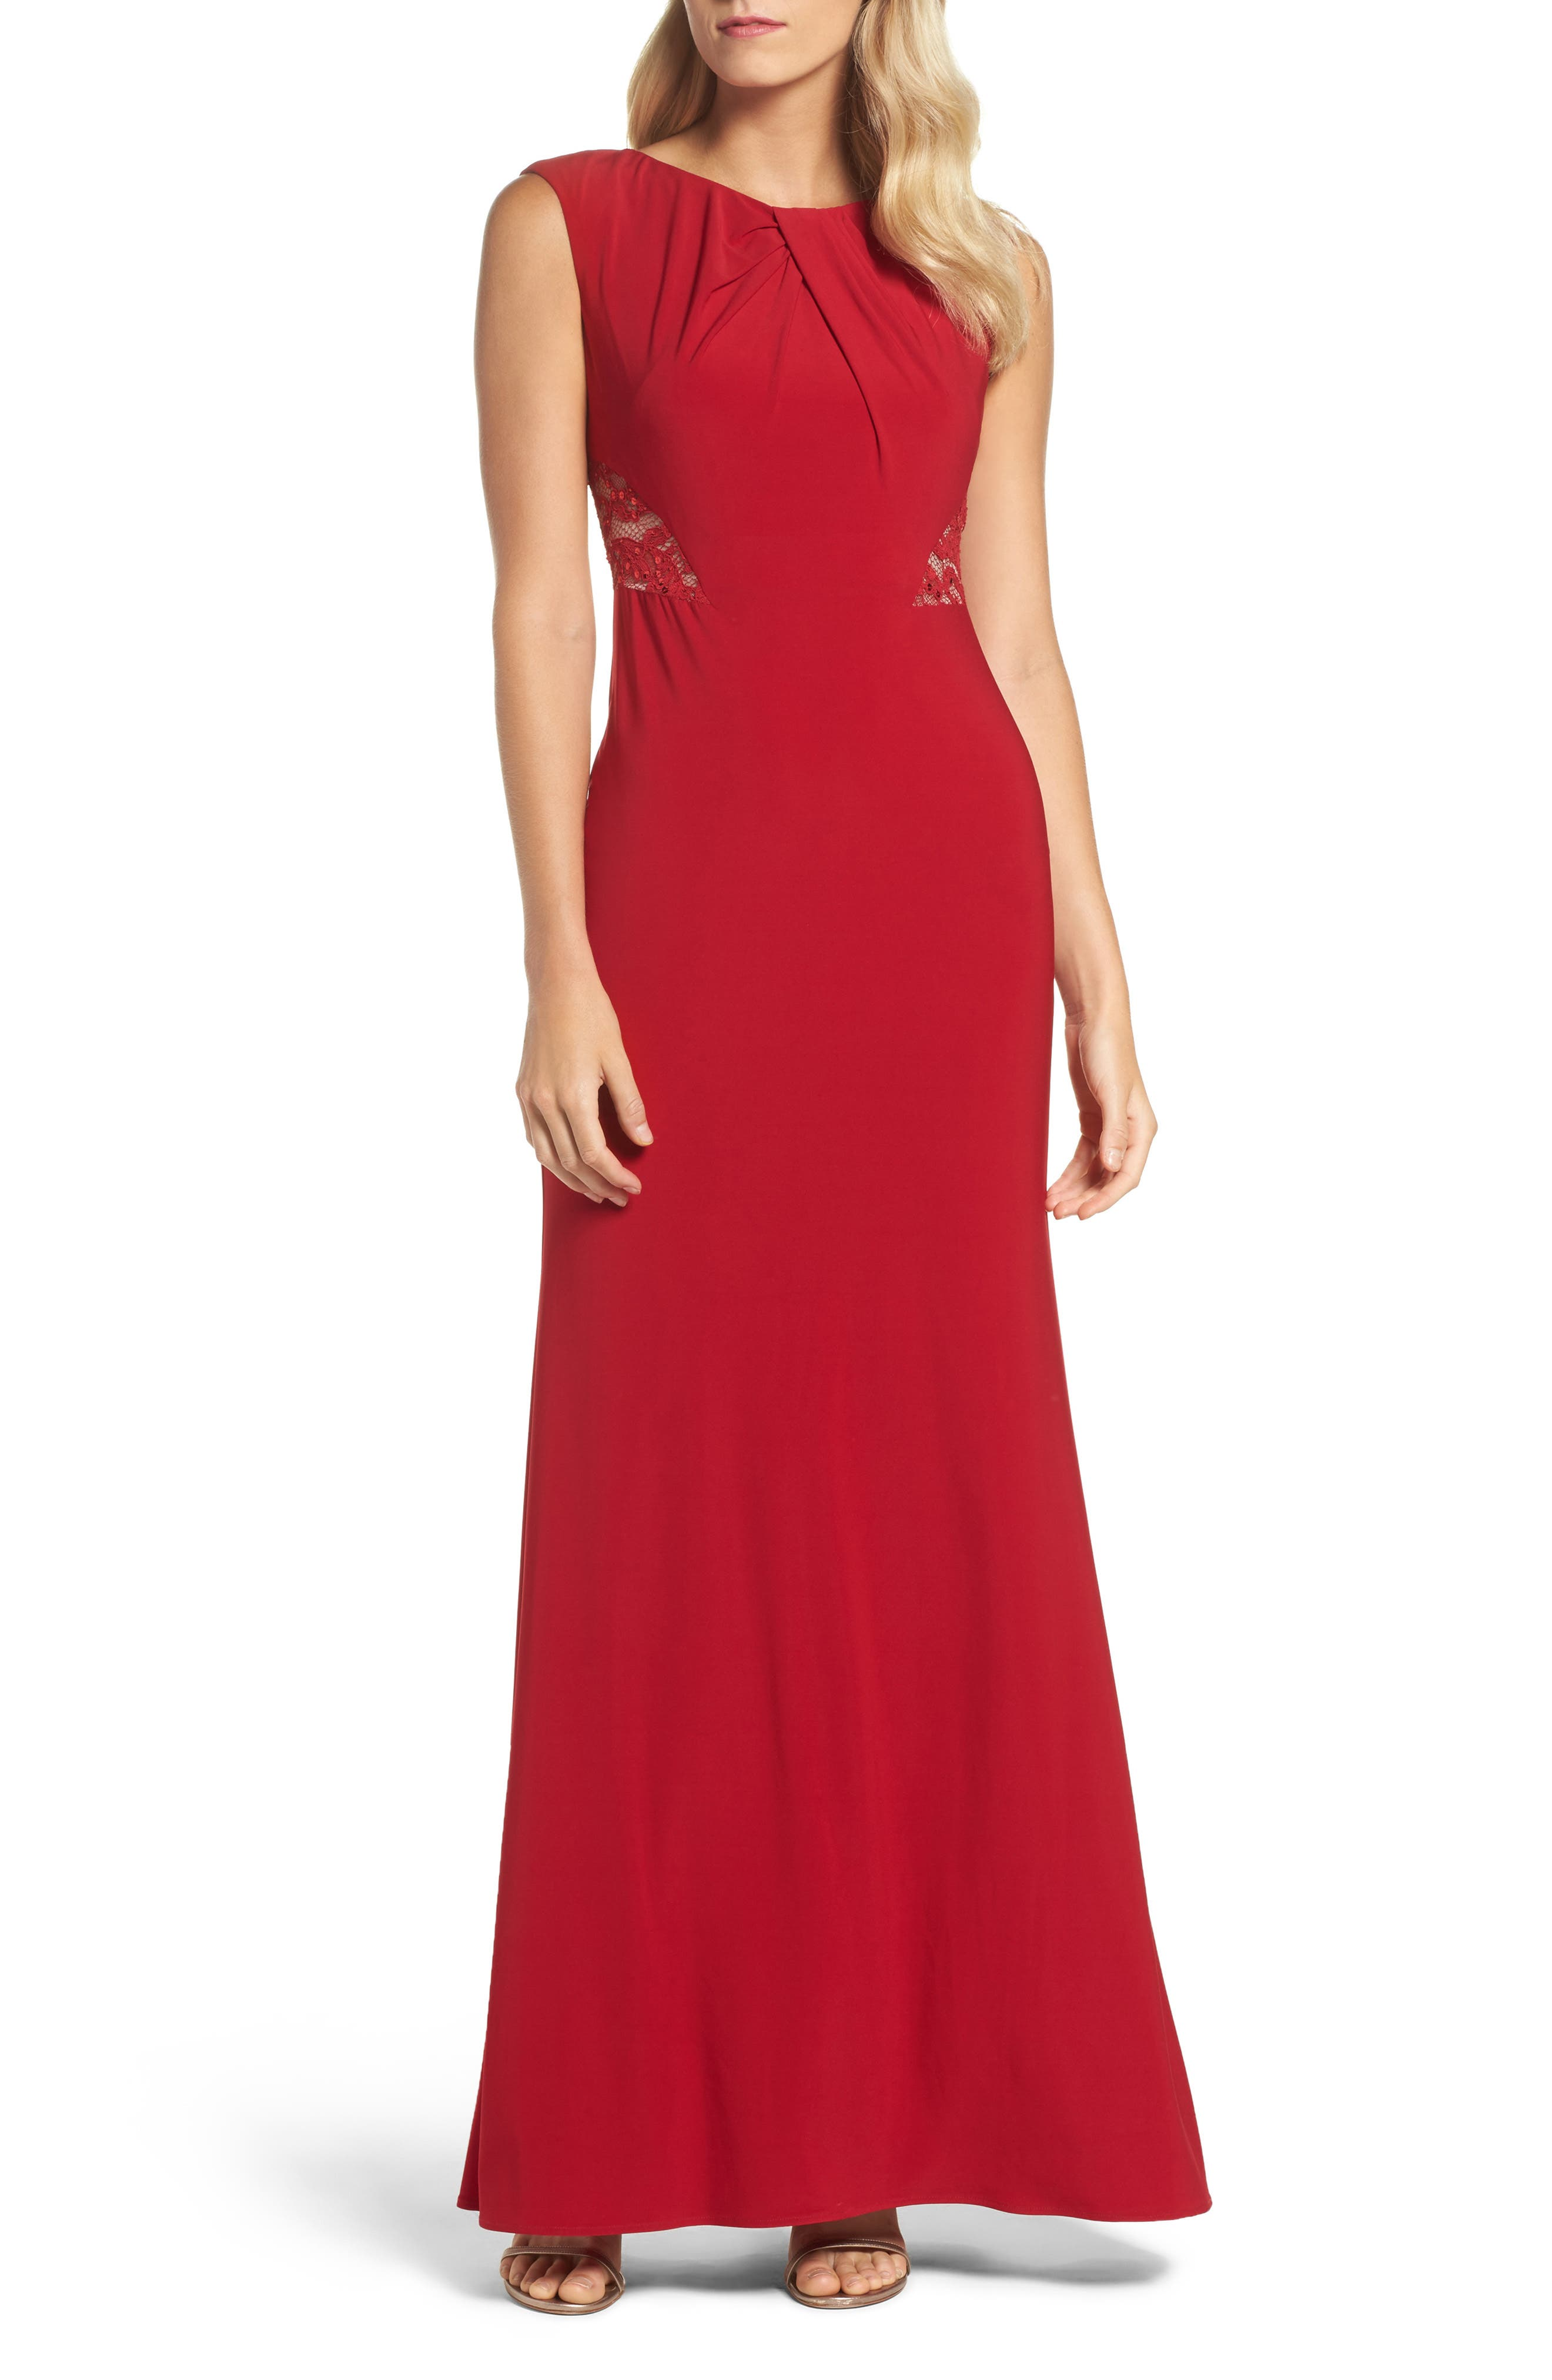 Adrianna Papell Lace Cutout Mermaid Gown